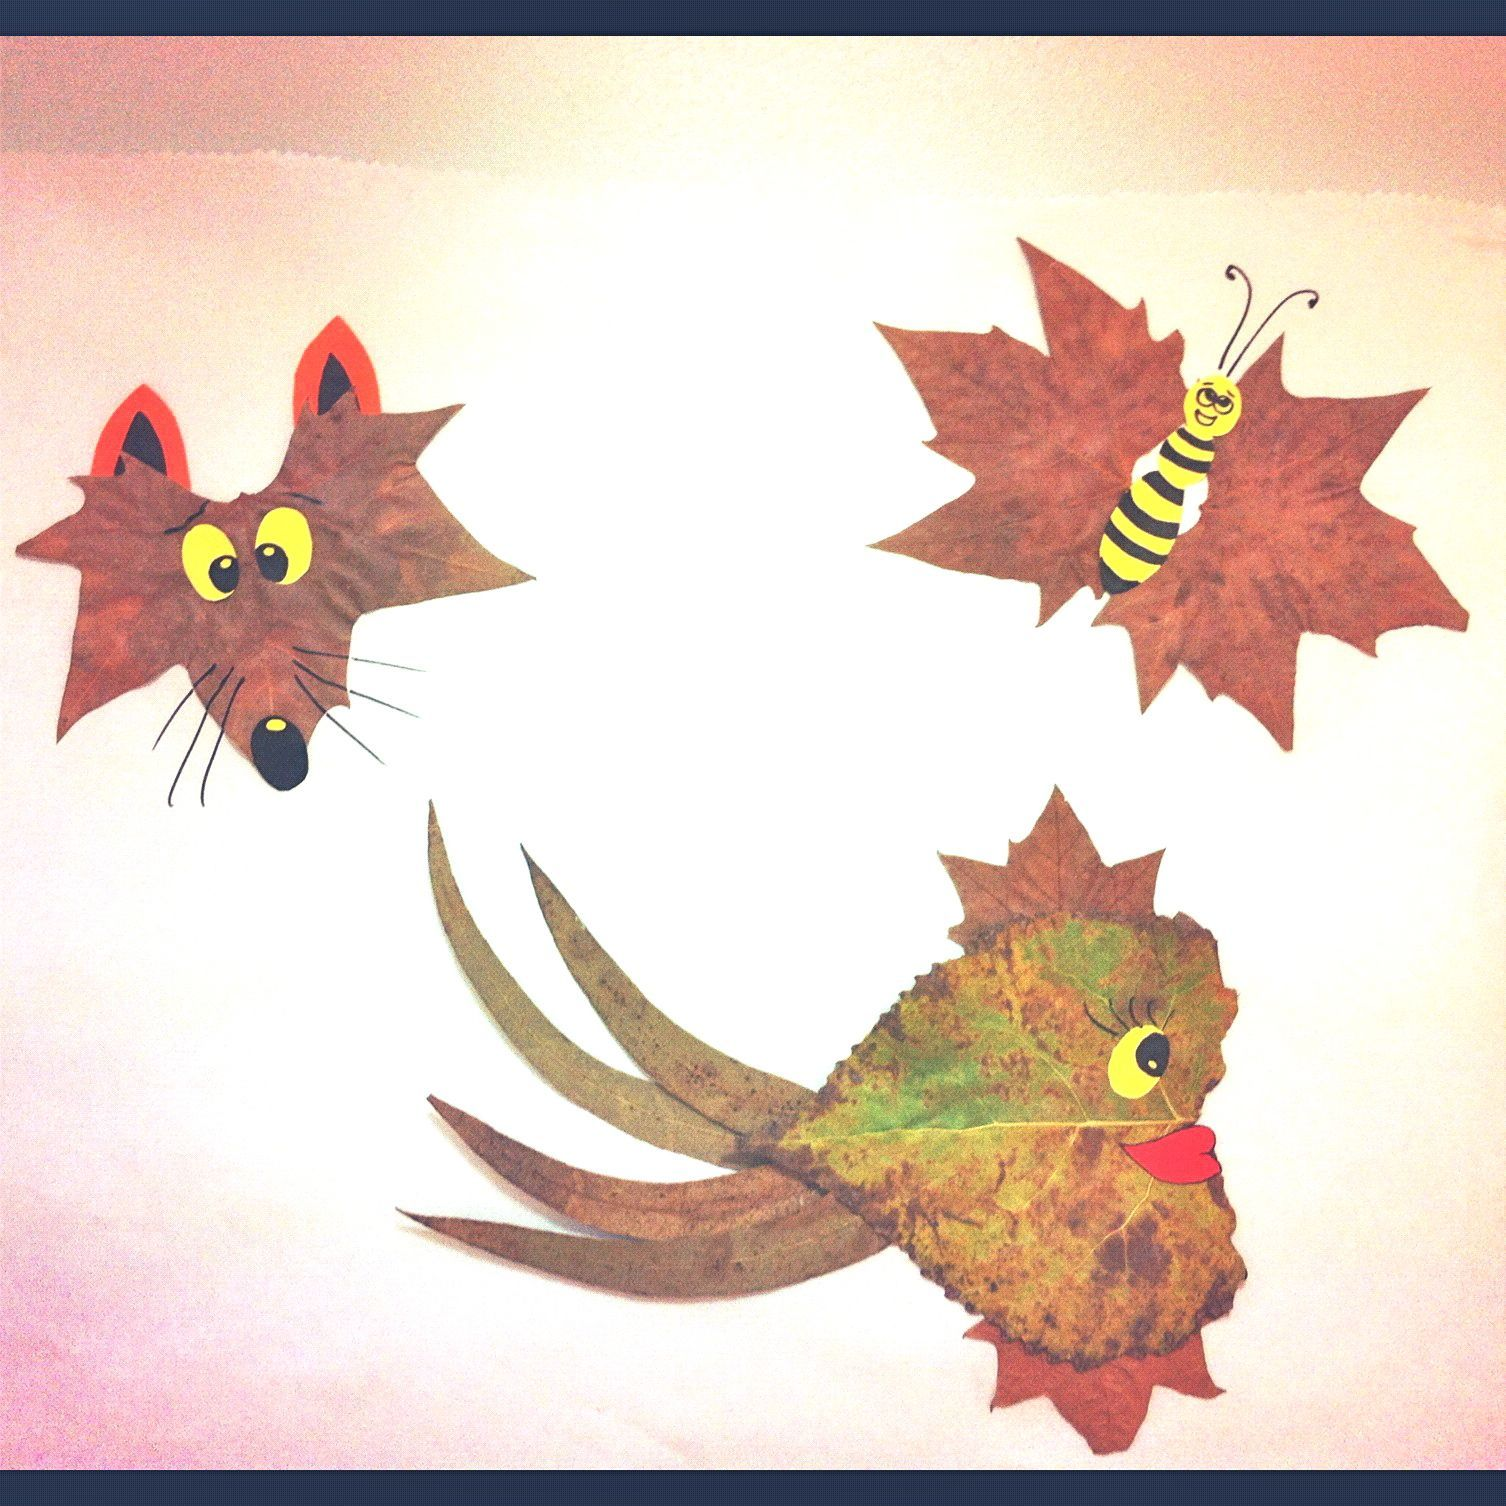 Leaves on pinterest autumn leaves fall leaves crafts and fall - Cute Animals Of Autumn Leaves Fall